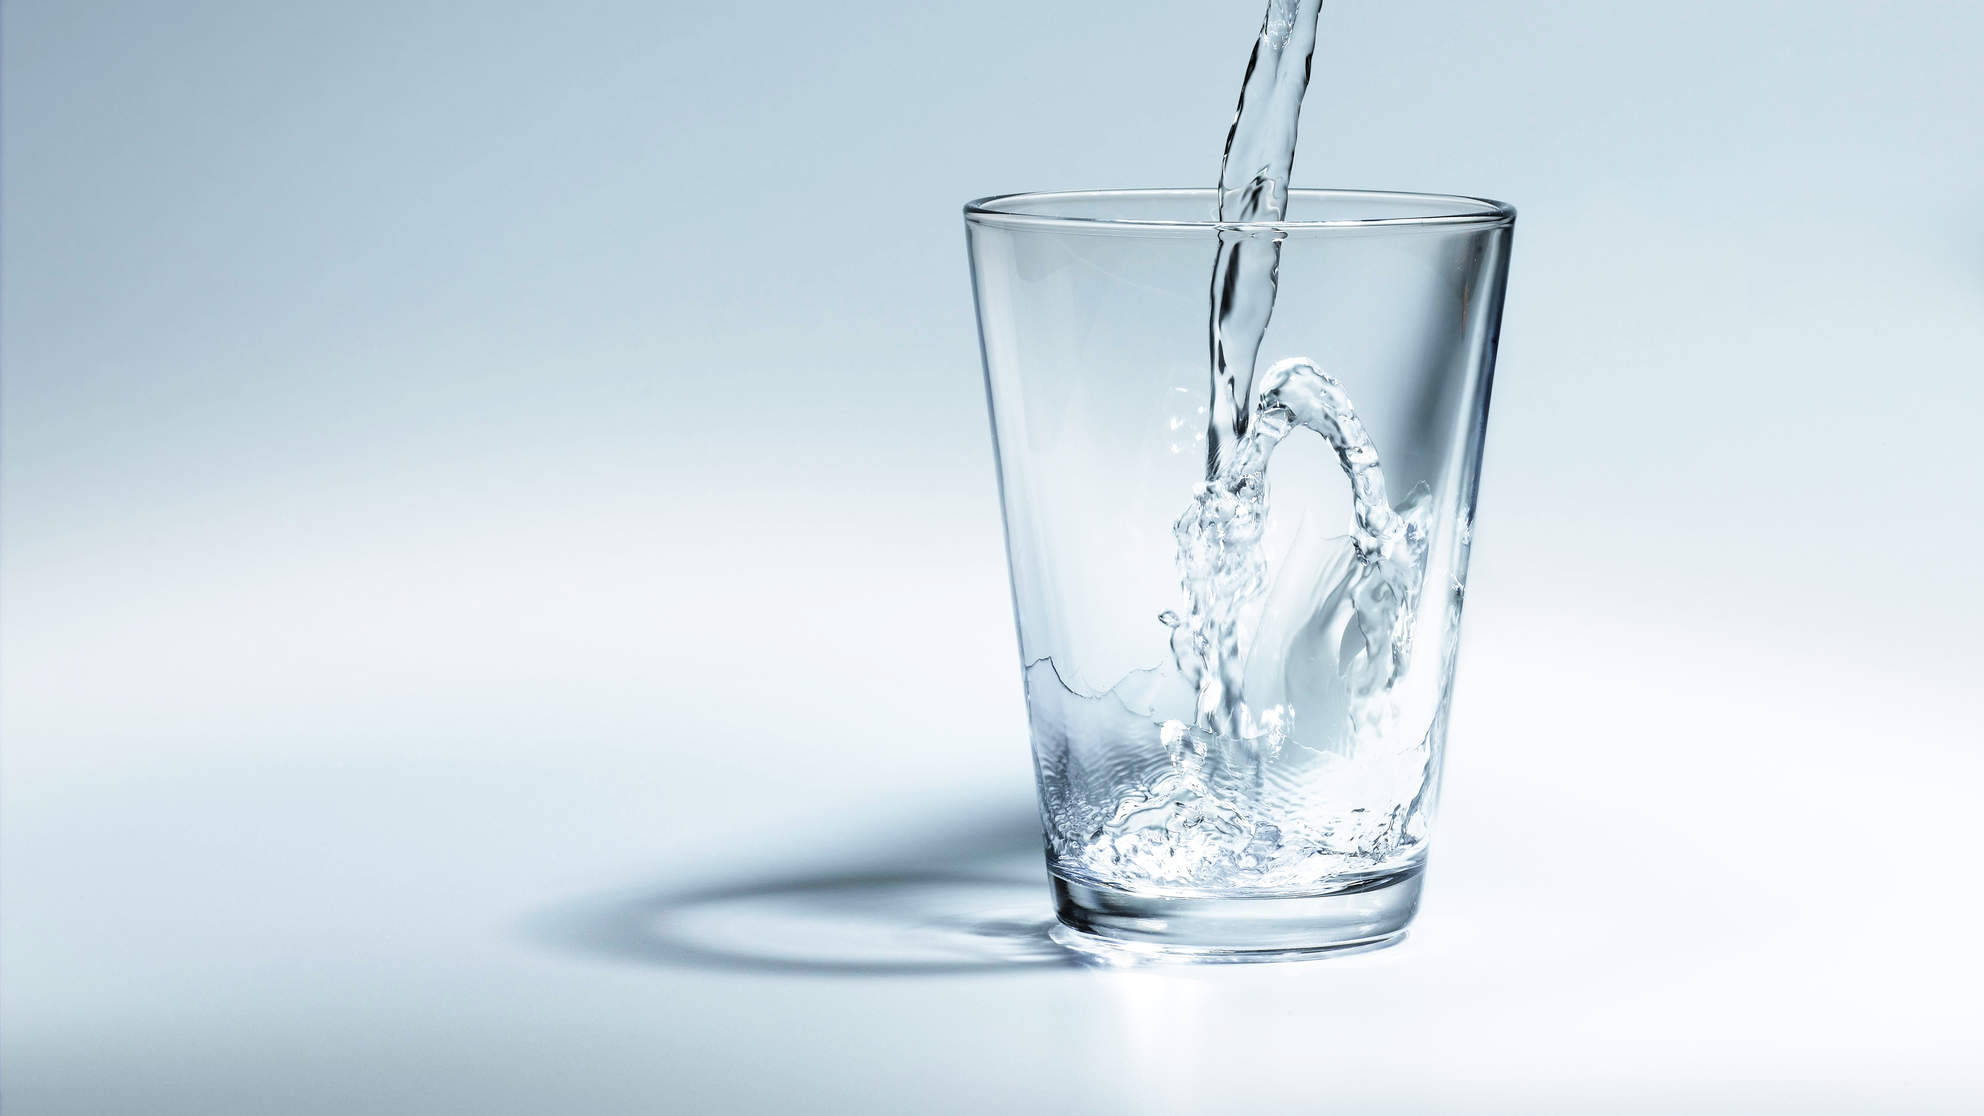 13-water-glass-energy